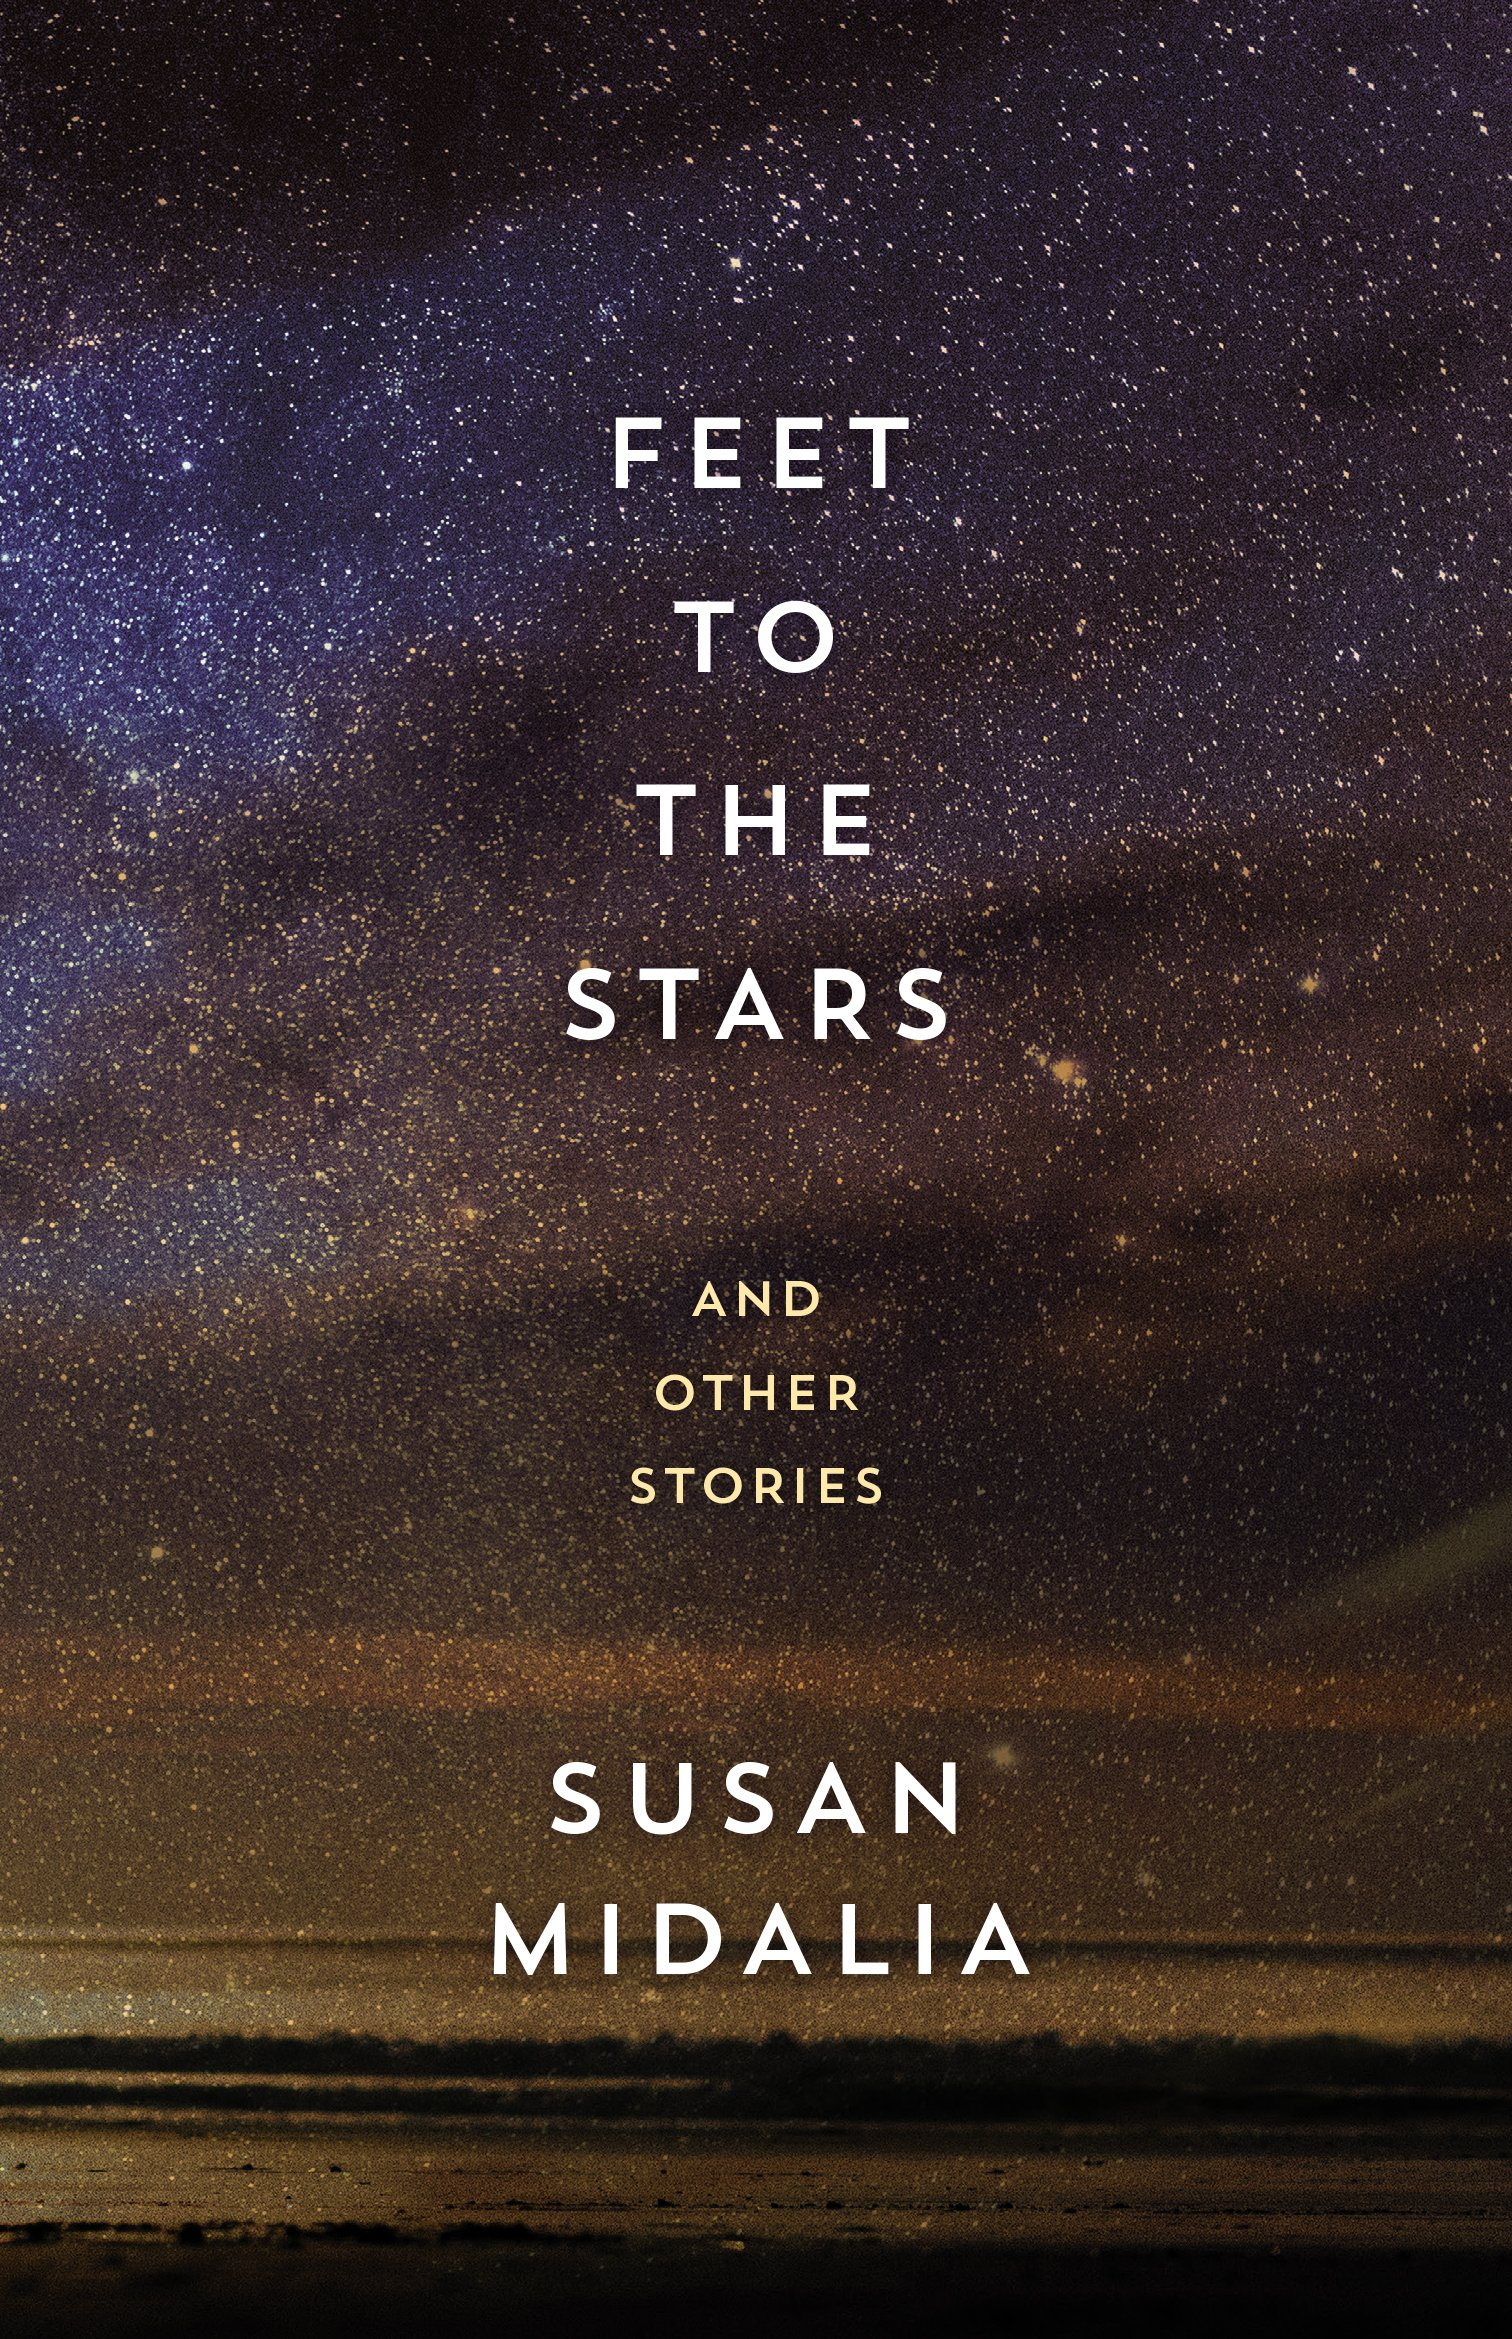 feet_to_the_stars_cover.jpg